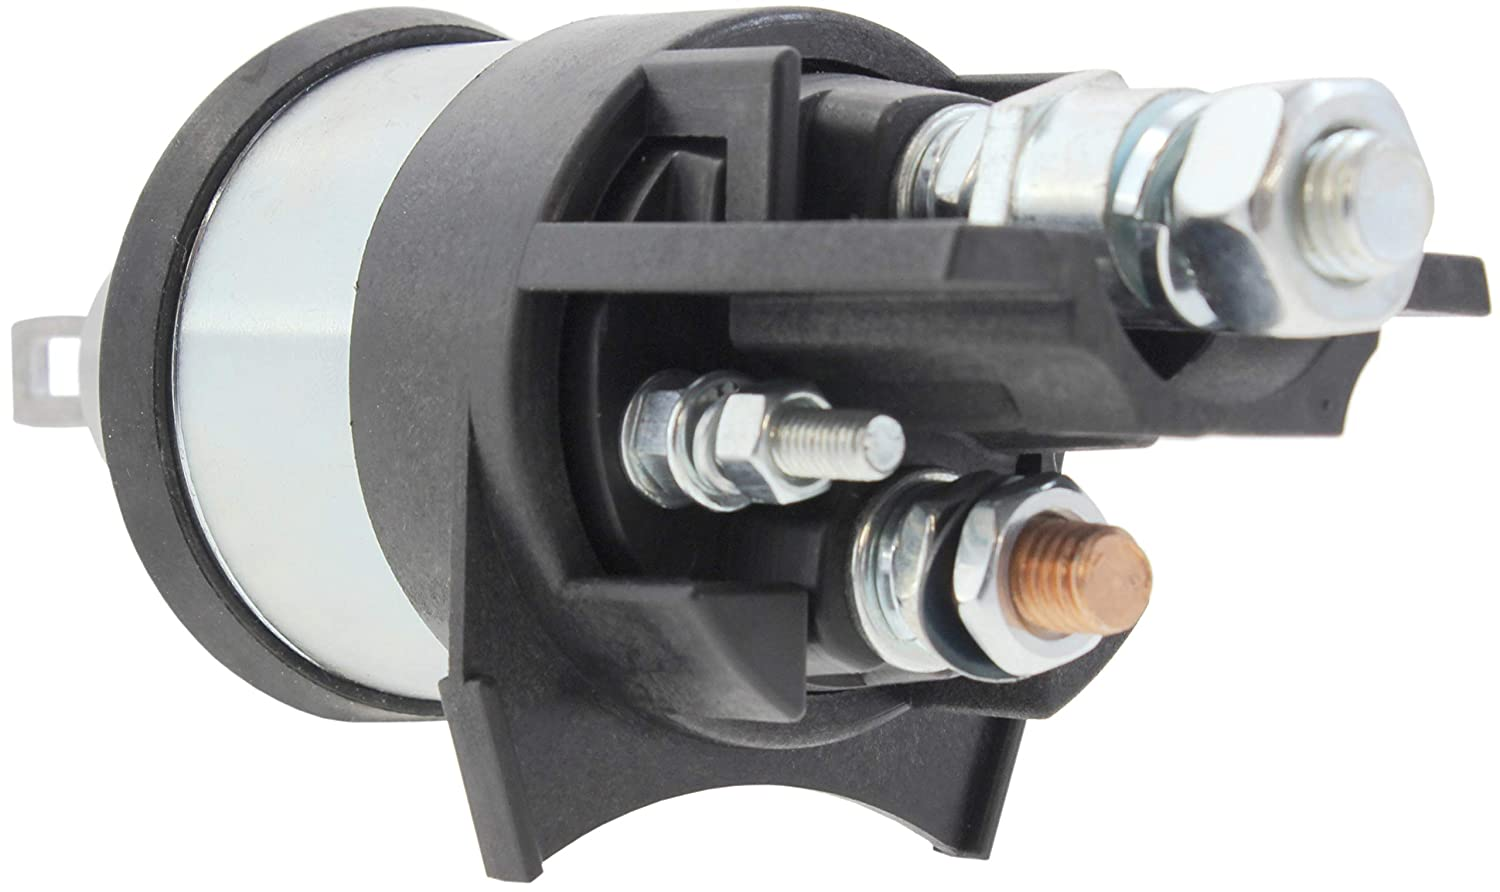 New Bosch Starter Solenoid fits Bosch Starter F002G20658 used on John Deere Ag Tractor 5045D 3.029 PowerTech, 3cyl. 179ci Turbo Dsl. 2008-2014 F002G20682 SSBO-7568 F-002-G20-658 RE533976 RE553507 Gladiator